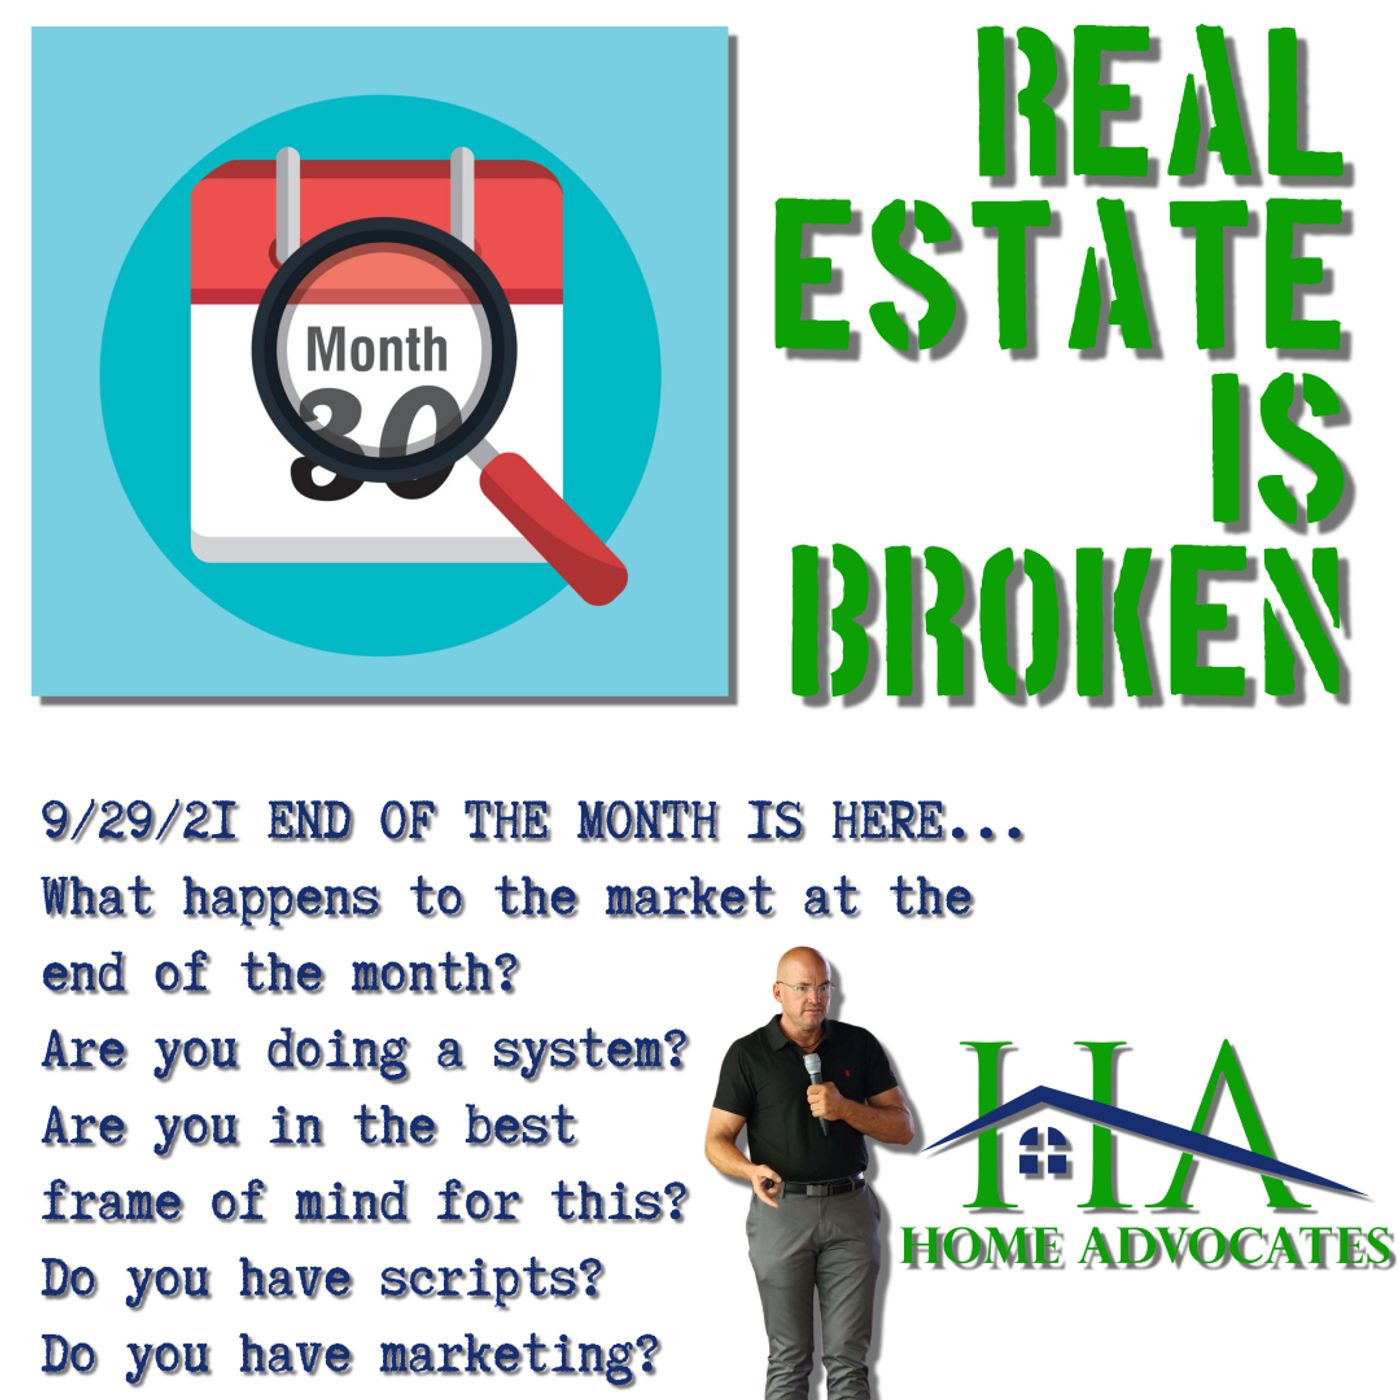 The end of the month | Real Estate Marketing Crash | Credit Reporting | Lee Honish | Home Advocates